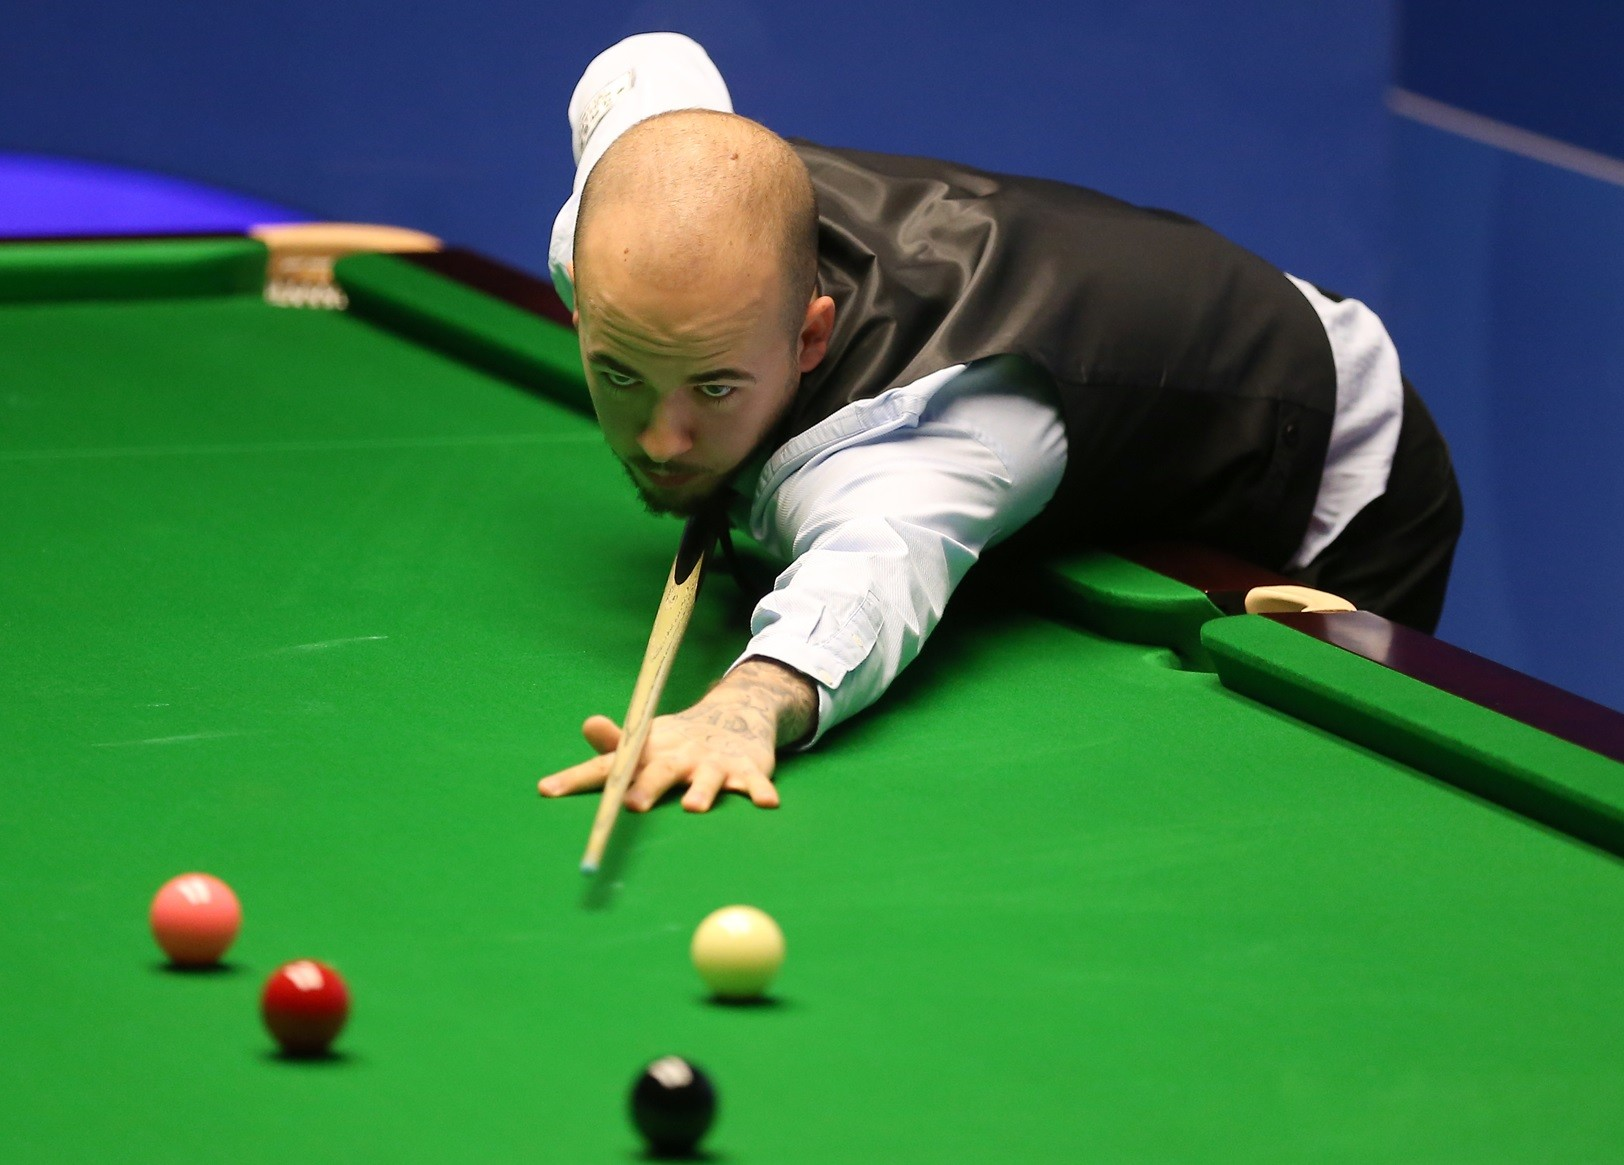 Championship League 2021: Day Six Preview and order of play – Brecel eyes second title